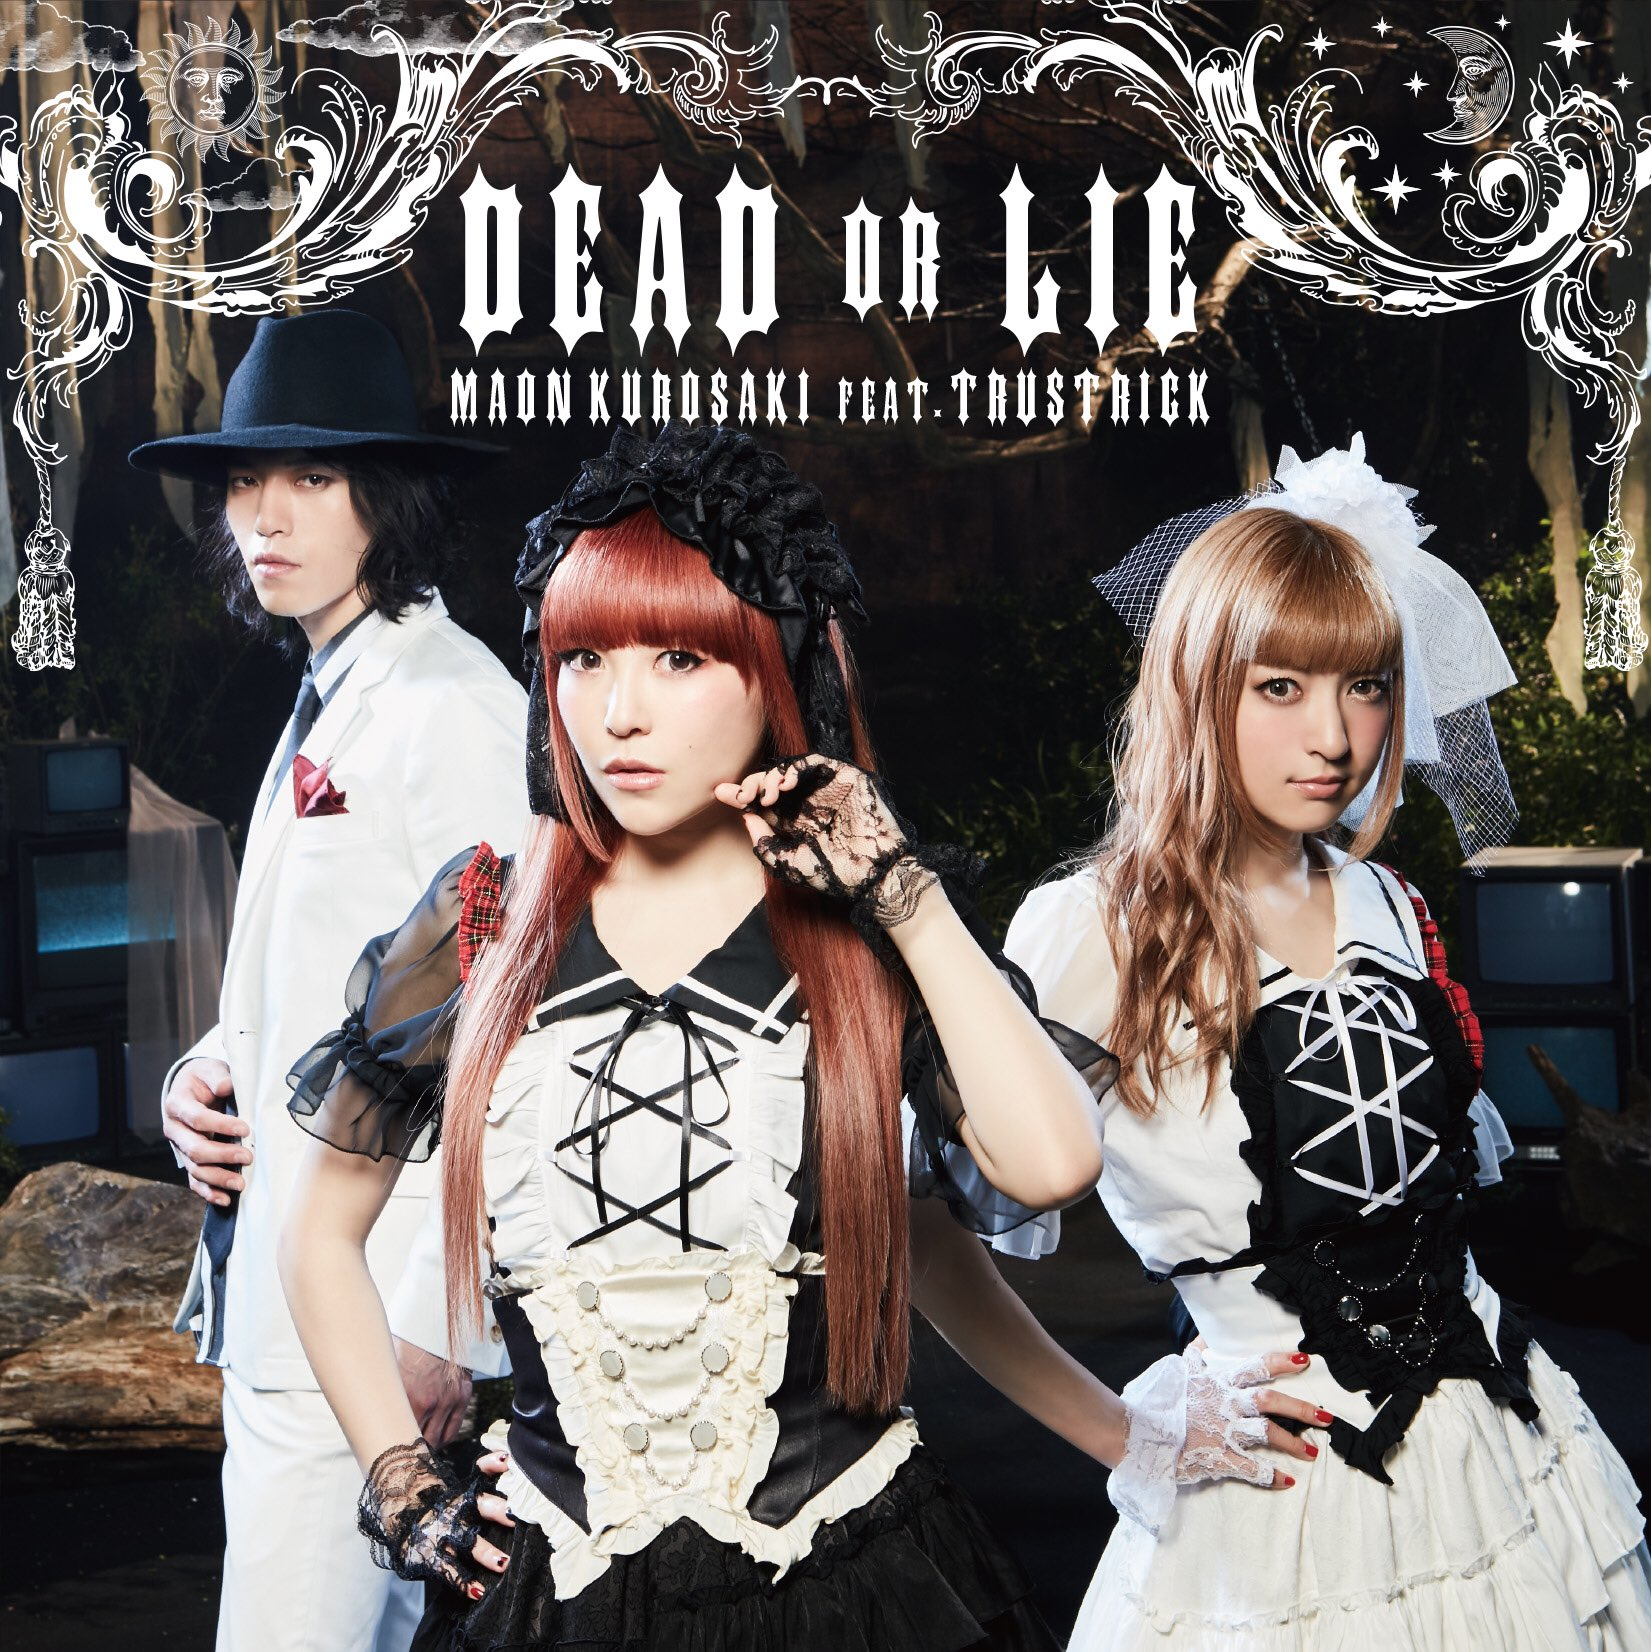 20170415.0846.17 Maon Kurosaki feat. Trustrick - Dead or Lie (Regular edition) (FLAC) cover 1.jpg